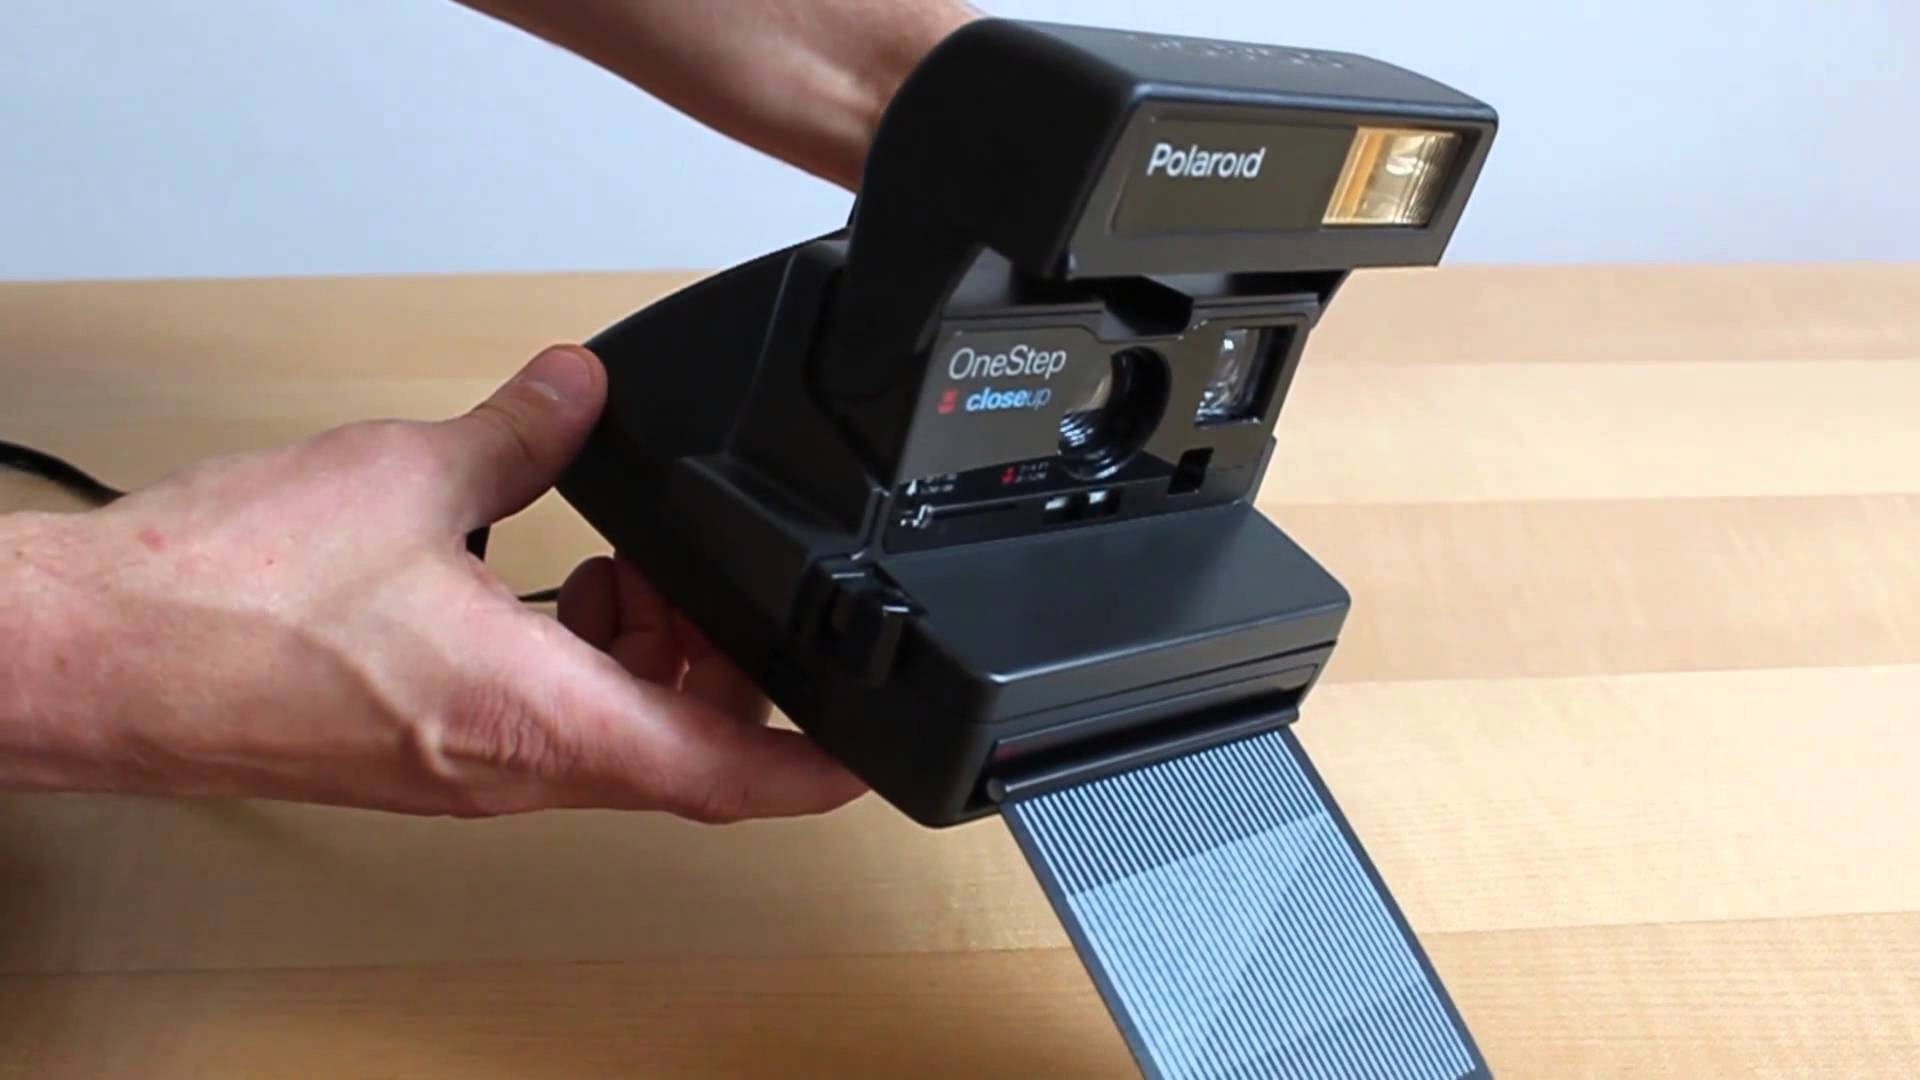 The classic Polaroid 600 that everyone thinks of when you say Polaroid.